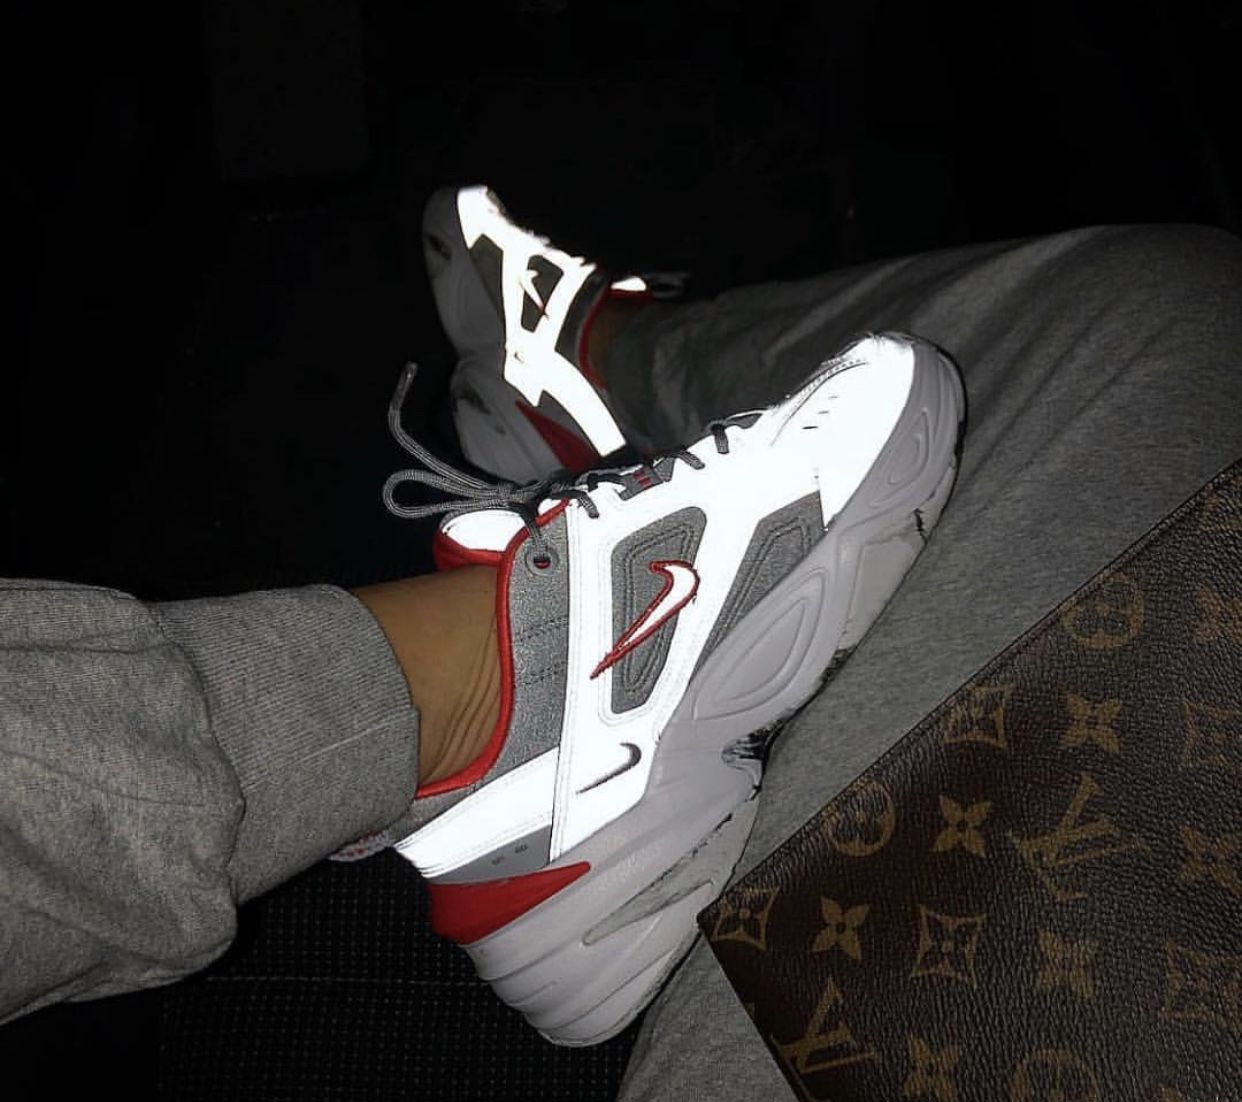 best website 24403 1f4a5 Pin by 𝒔𝒊𝒎𝒊 on shoes in 2019   Zapatos, Zapatos zapatillas, Zapatos  deportivos